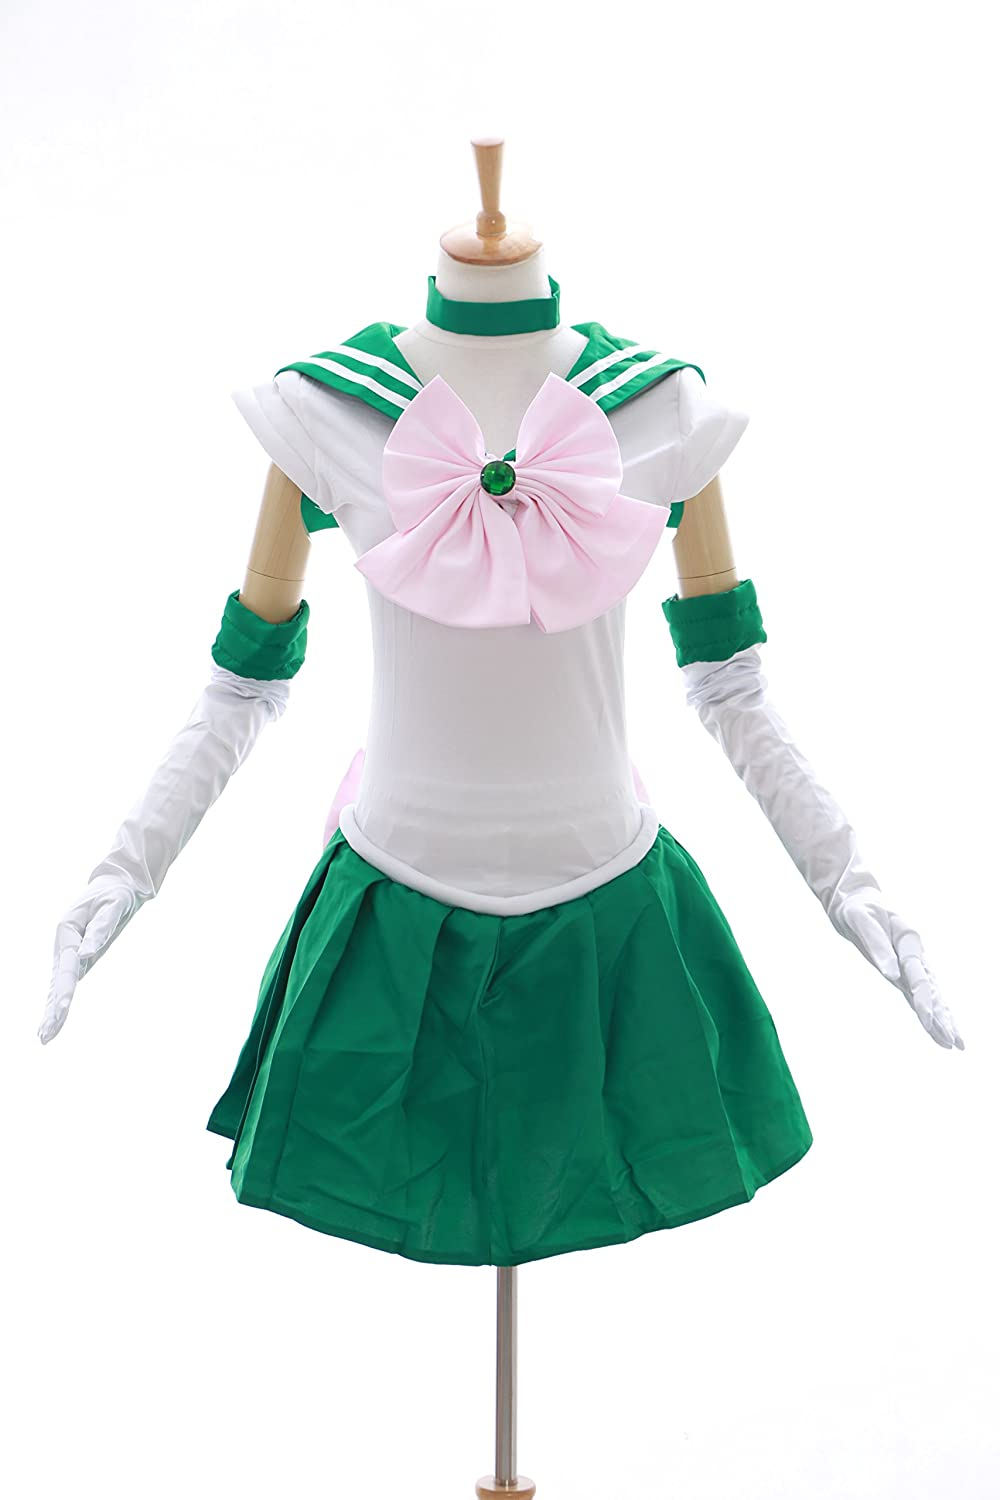 Kawaii-Story H de 6002 Sailor Moon Jupiter Verde Blanco Disfraz Cosplay  Vestido Dress Costume  Amazon.es  Ropa y accesorios 235564057fcf